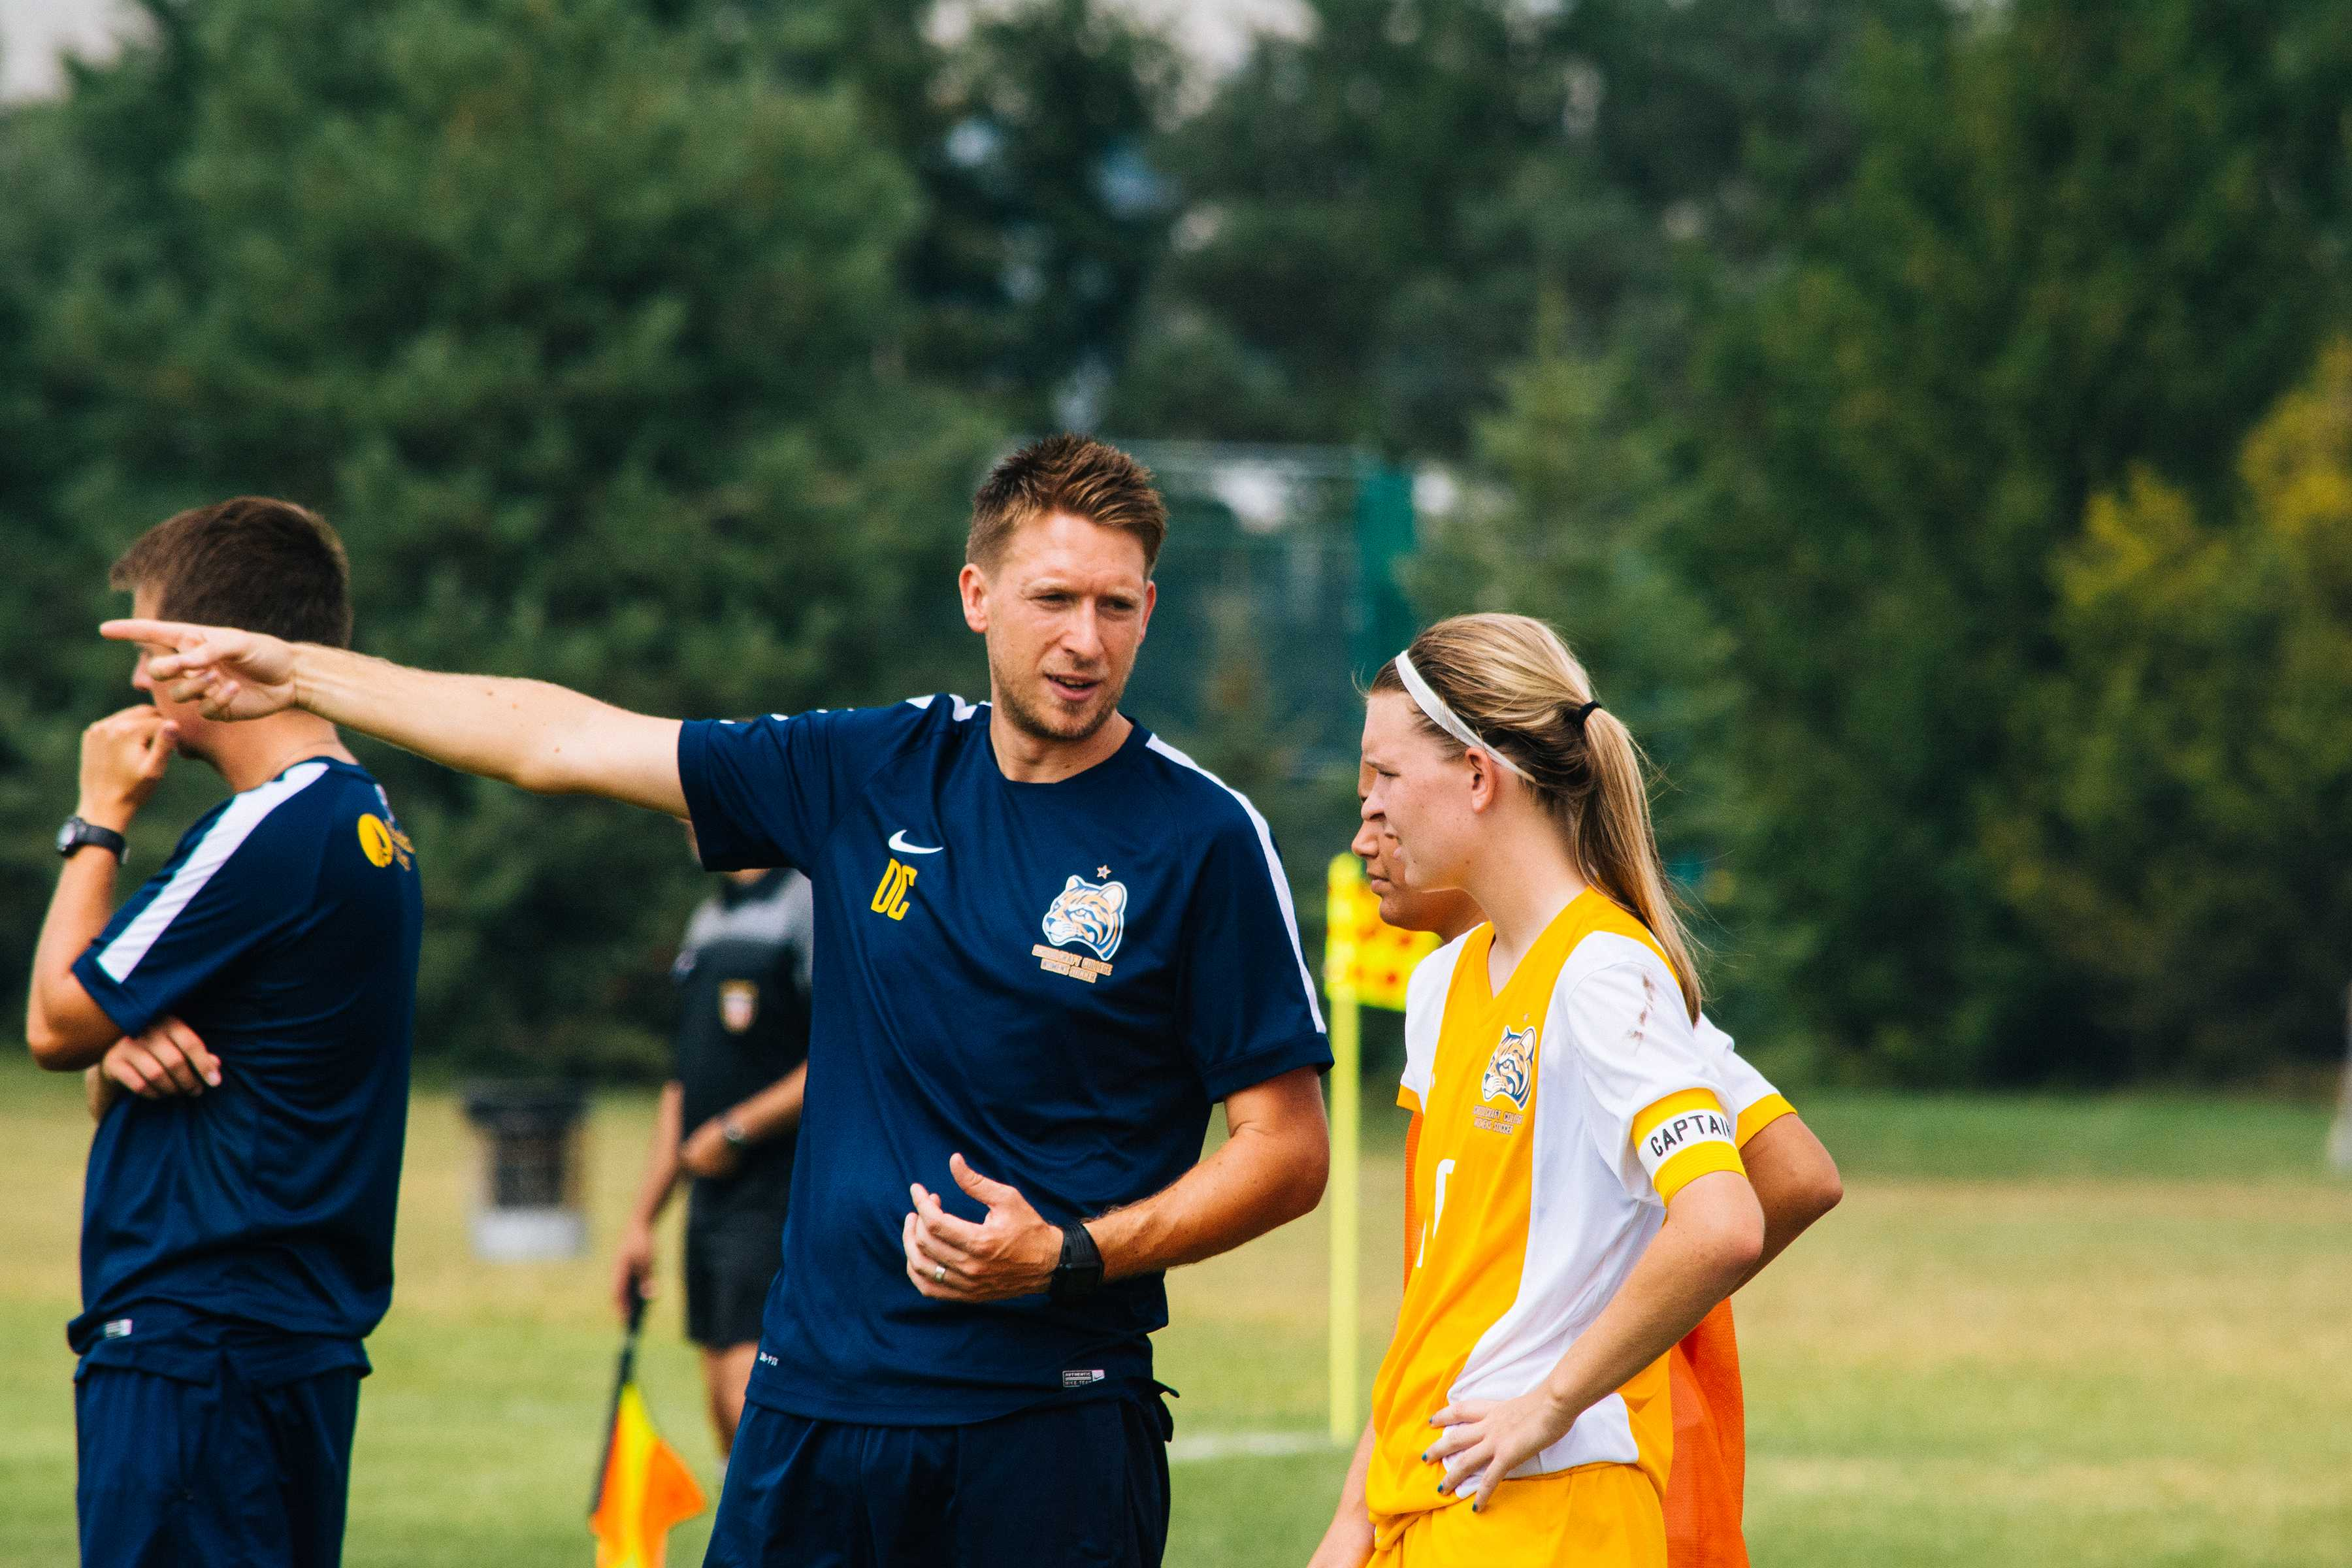 Head Coach of the Schoolcraft College Women Soccer team, Dave Carver, discusses strategy with one of the Lady Ocelots during their game Sunday afternoon.